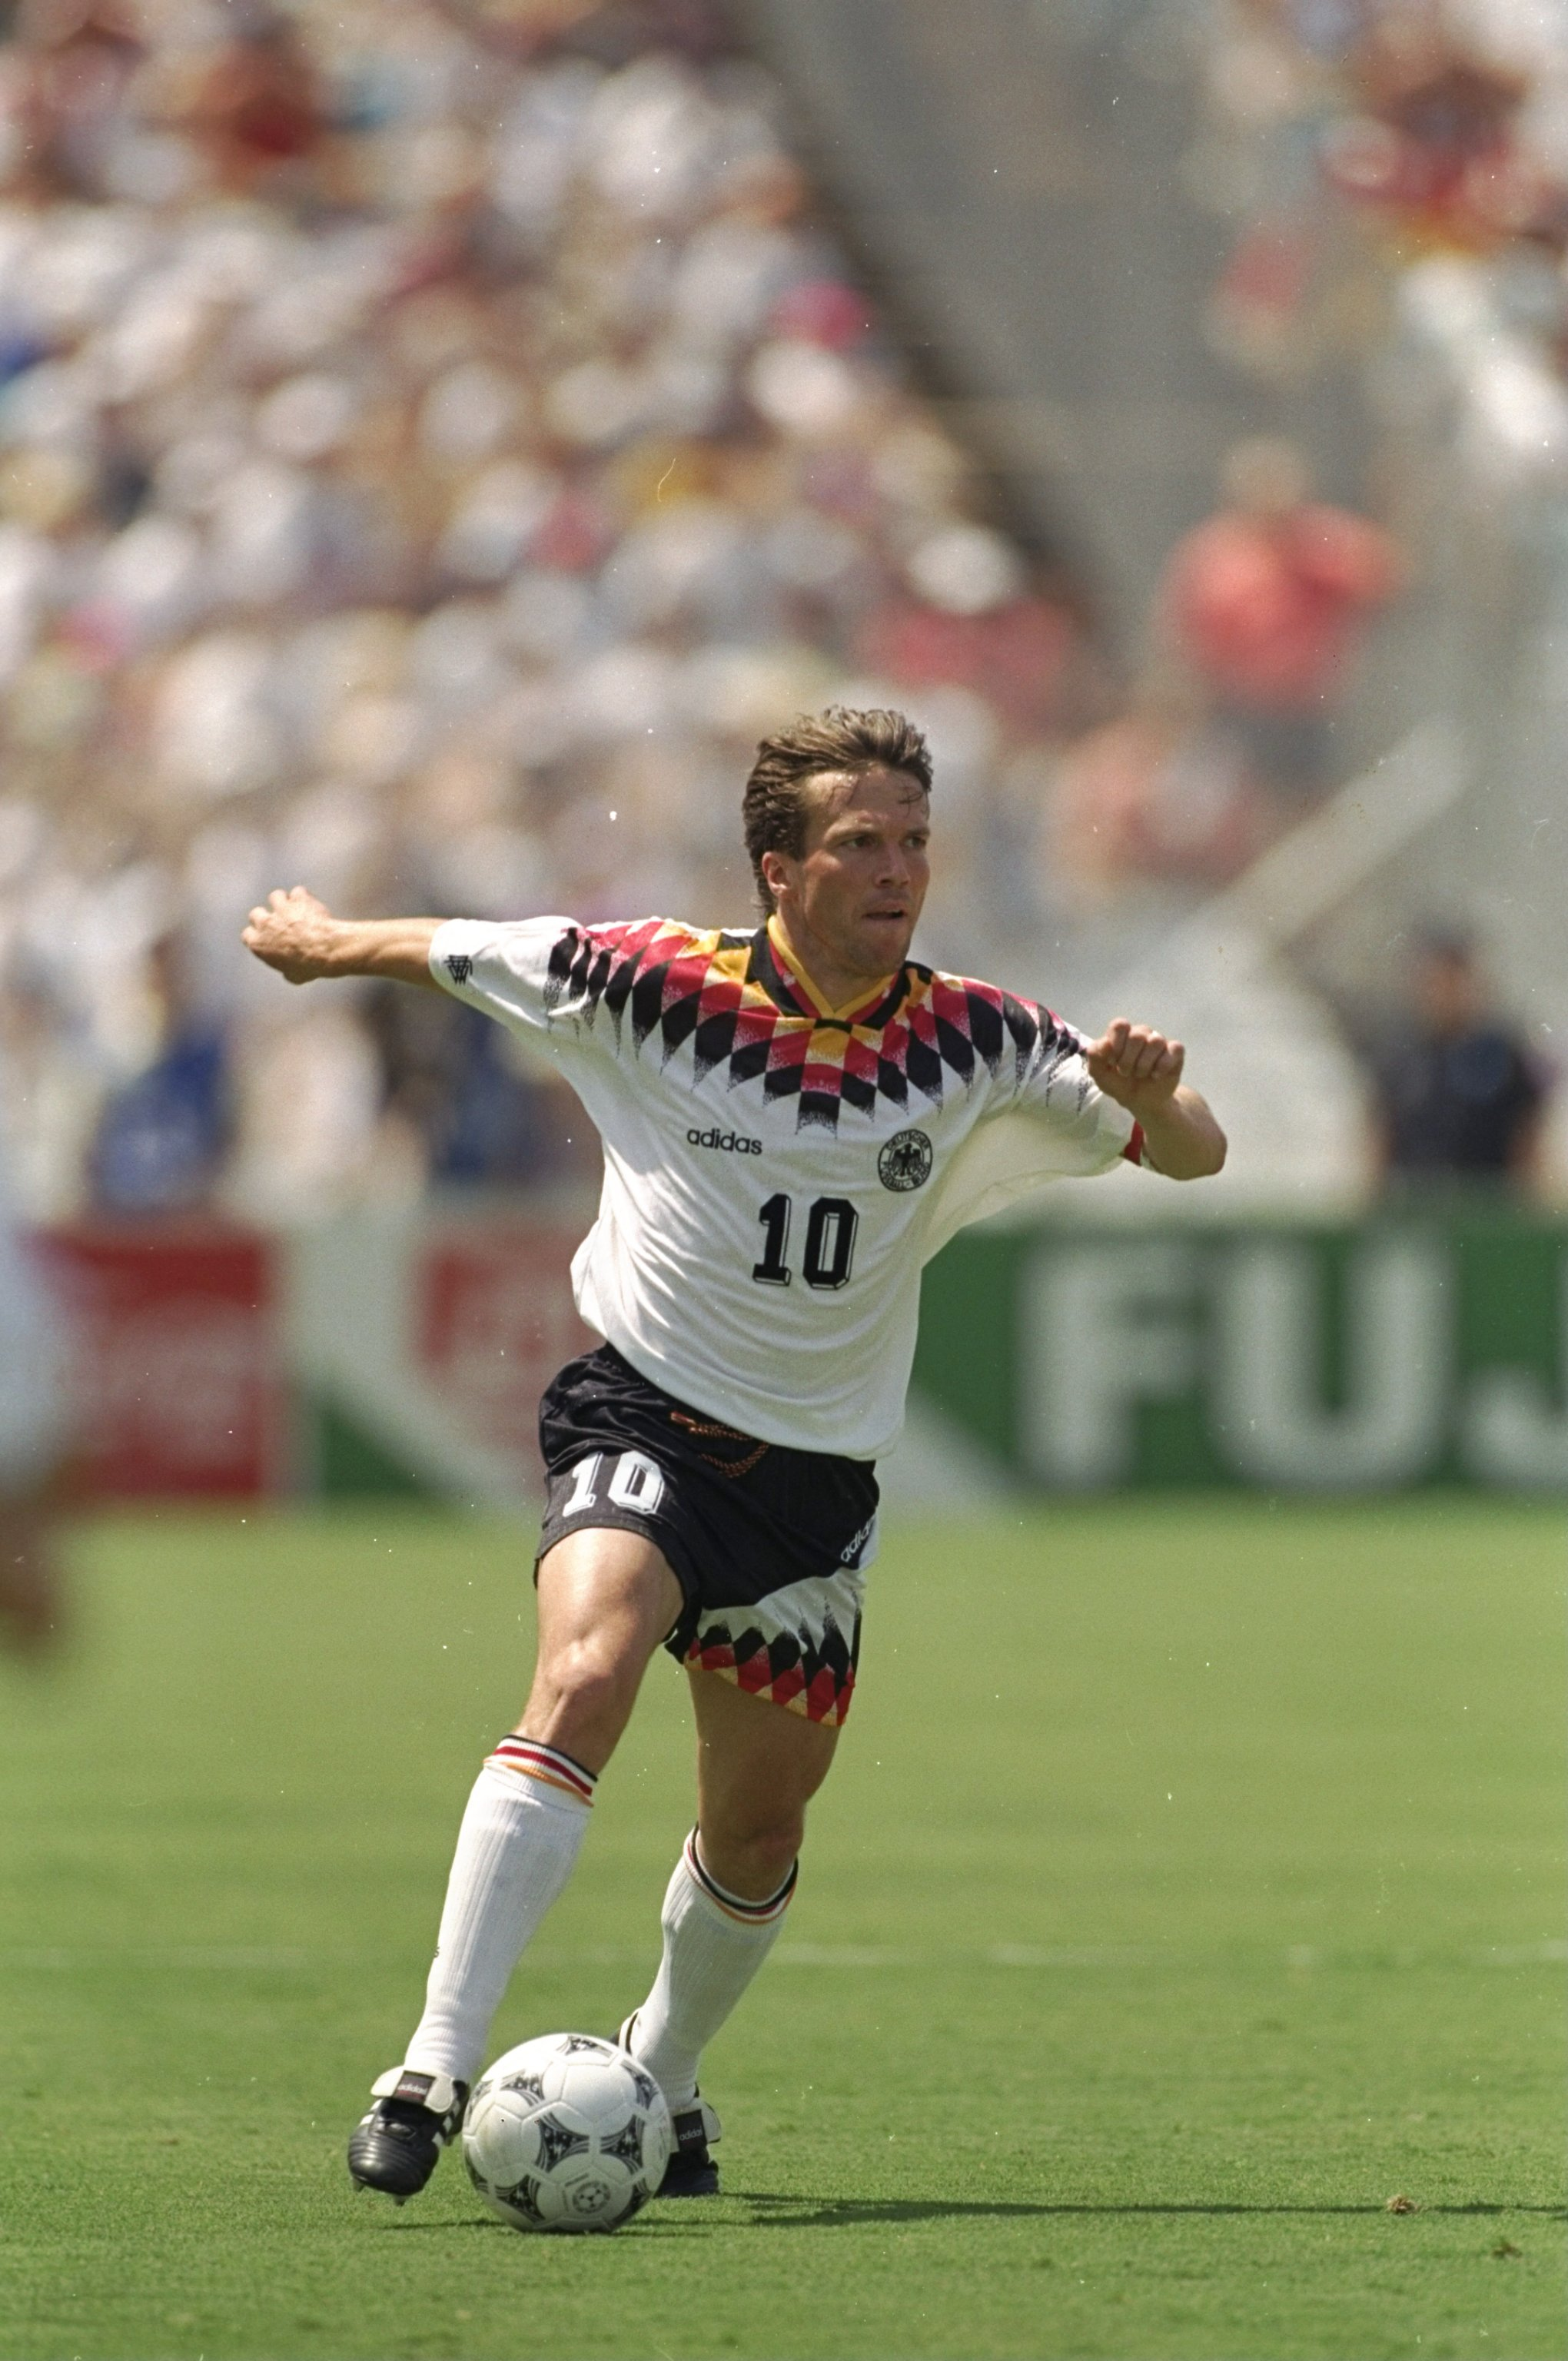 ec8271ede 27 Jun 1994  Lothar Matthaus of Germany in action during the World Cup  match against